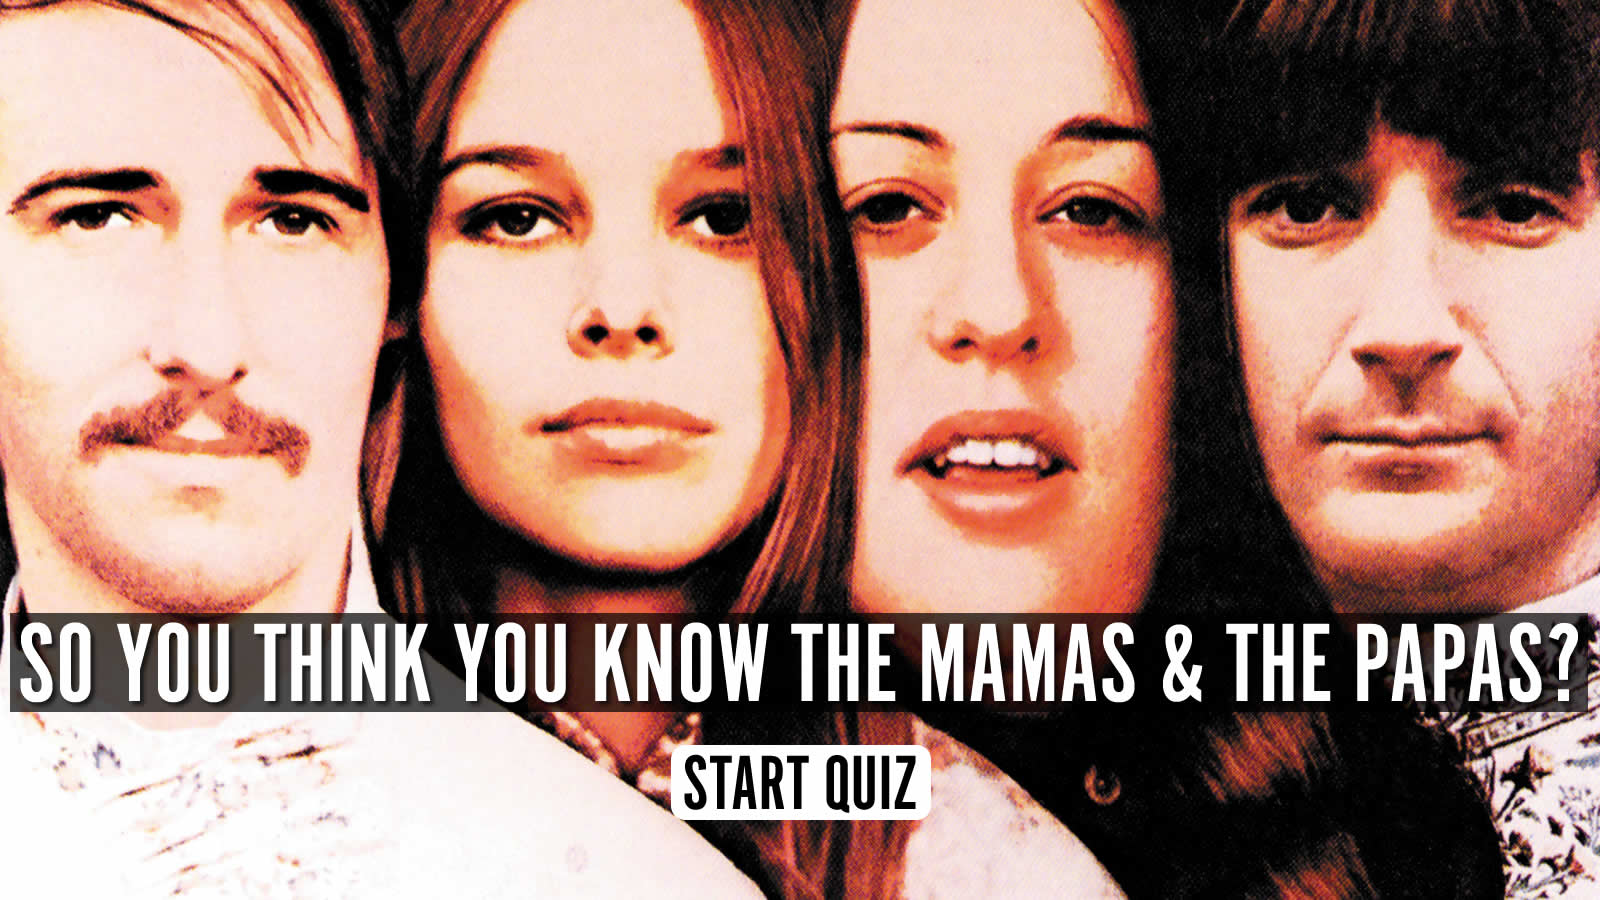 So You Think You Know The Mamas And The Papas